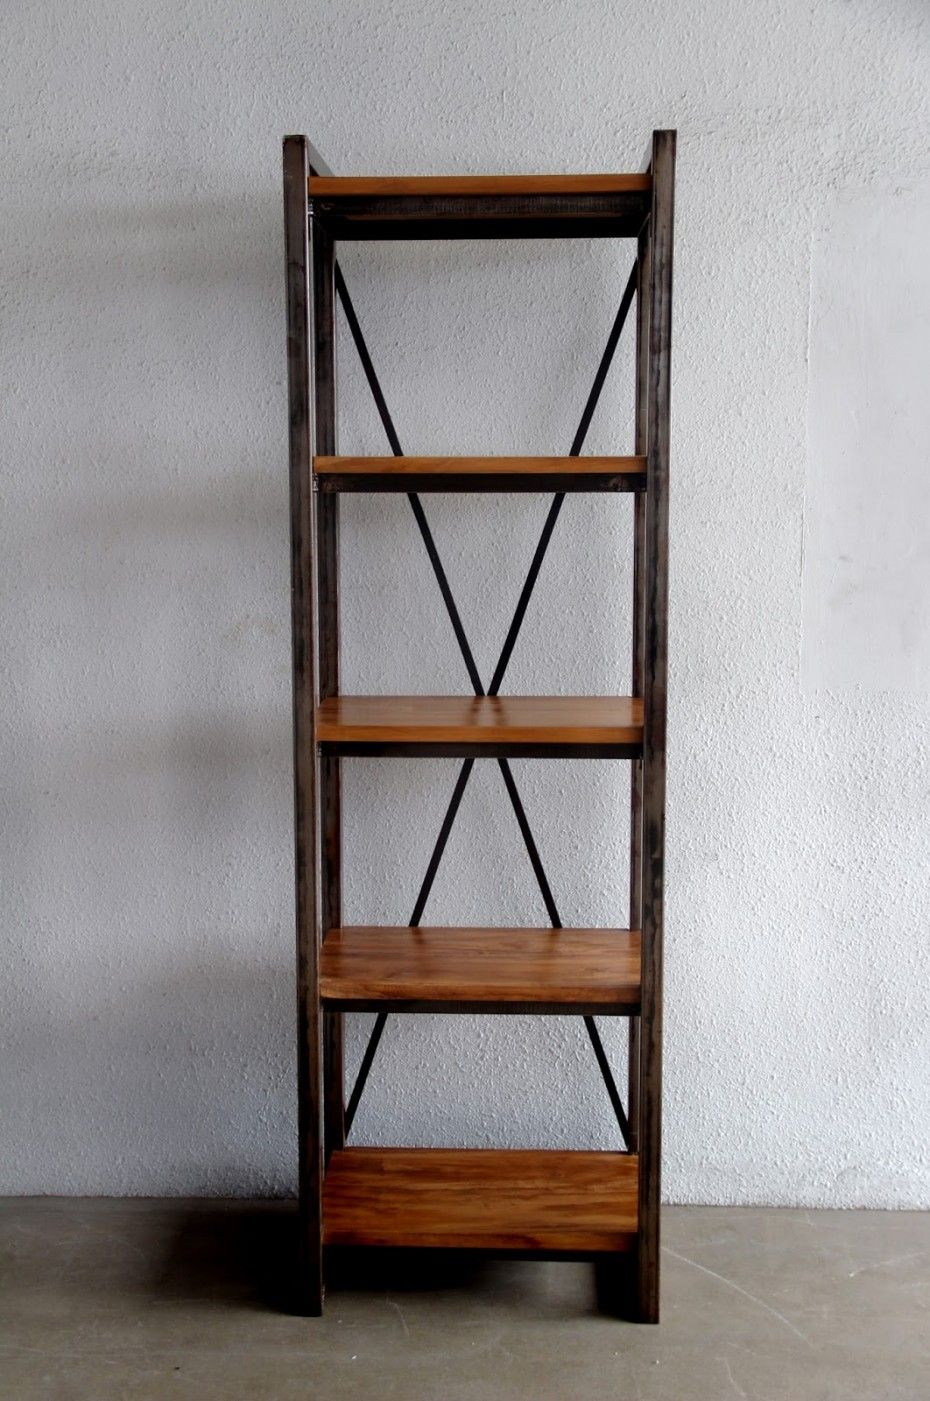 Metal And Wood Bookshelves Design With Freestanding Wooden Shelves With Series Of Metallic Iron Also Five Wood Metal Bookcase Wood Bookshelves Bookshelf Design